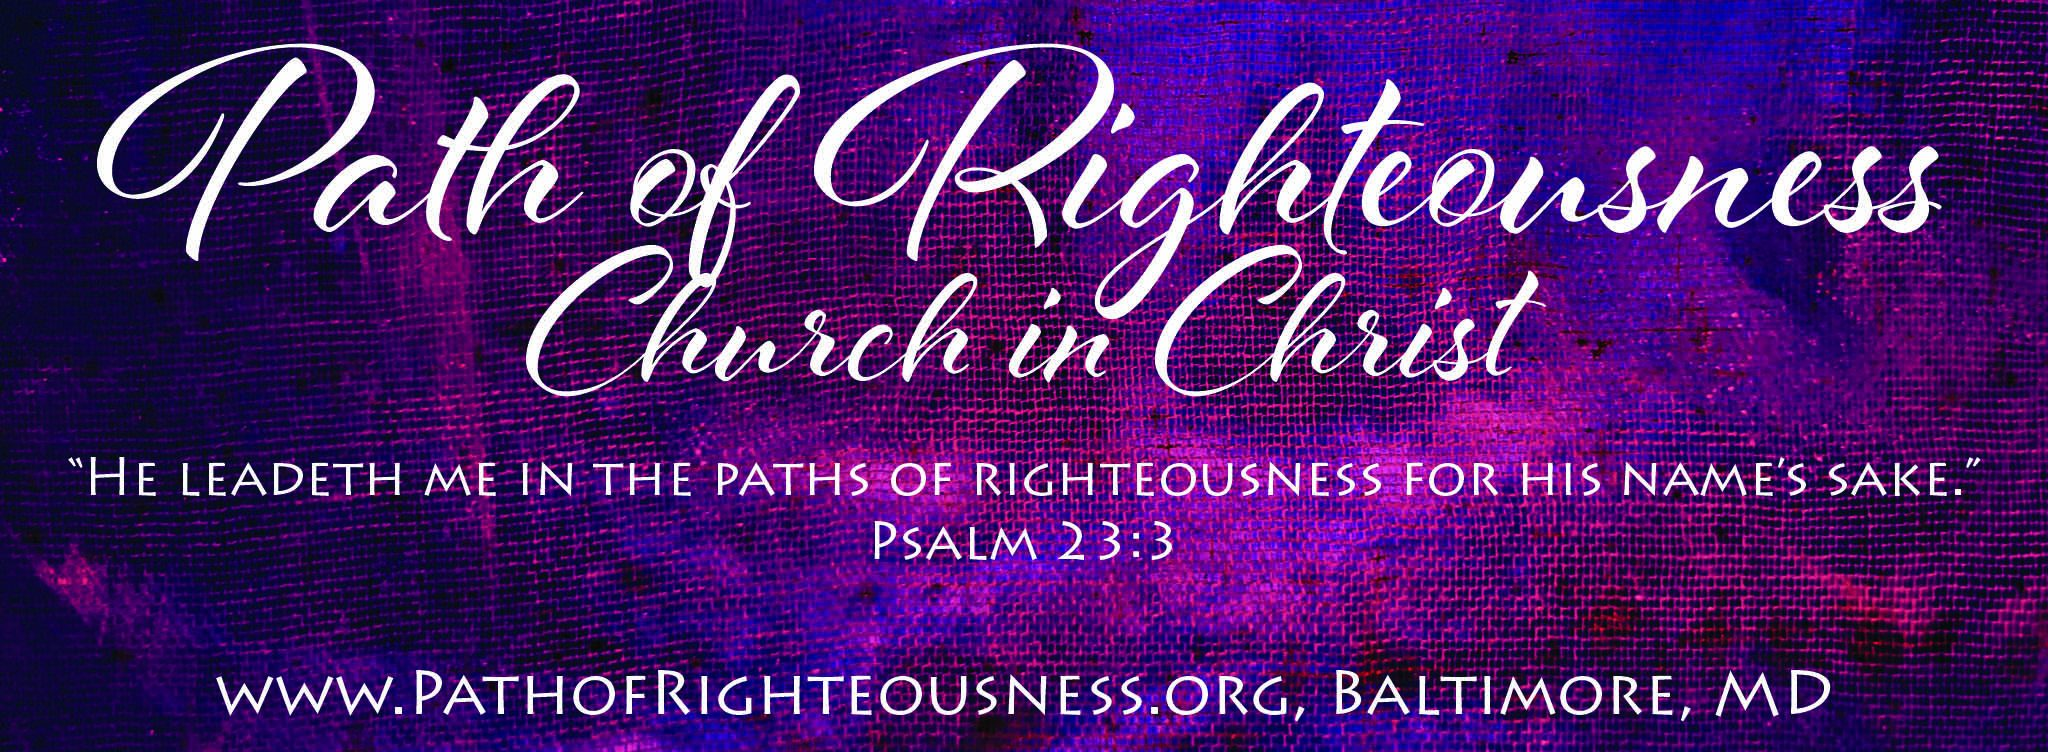 Path of Righteousness Church in Christ, Inc